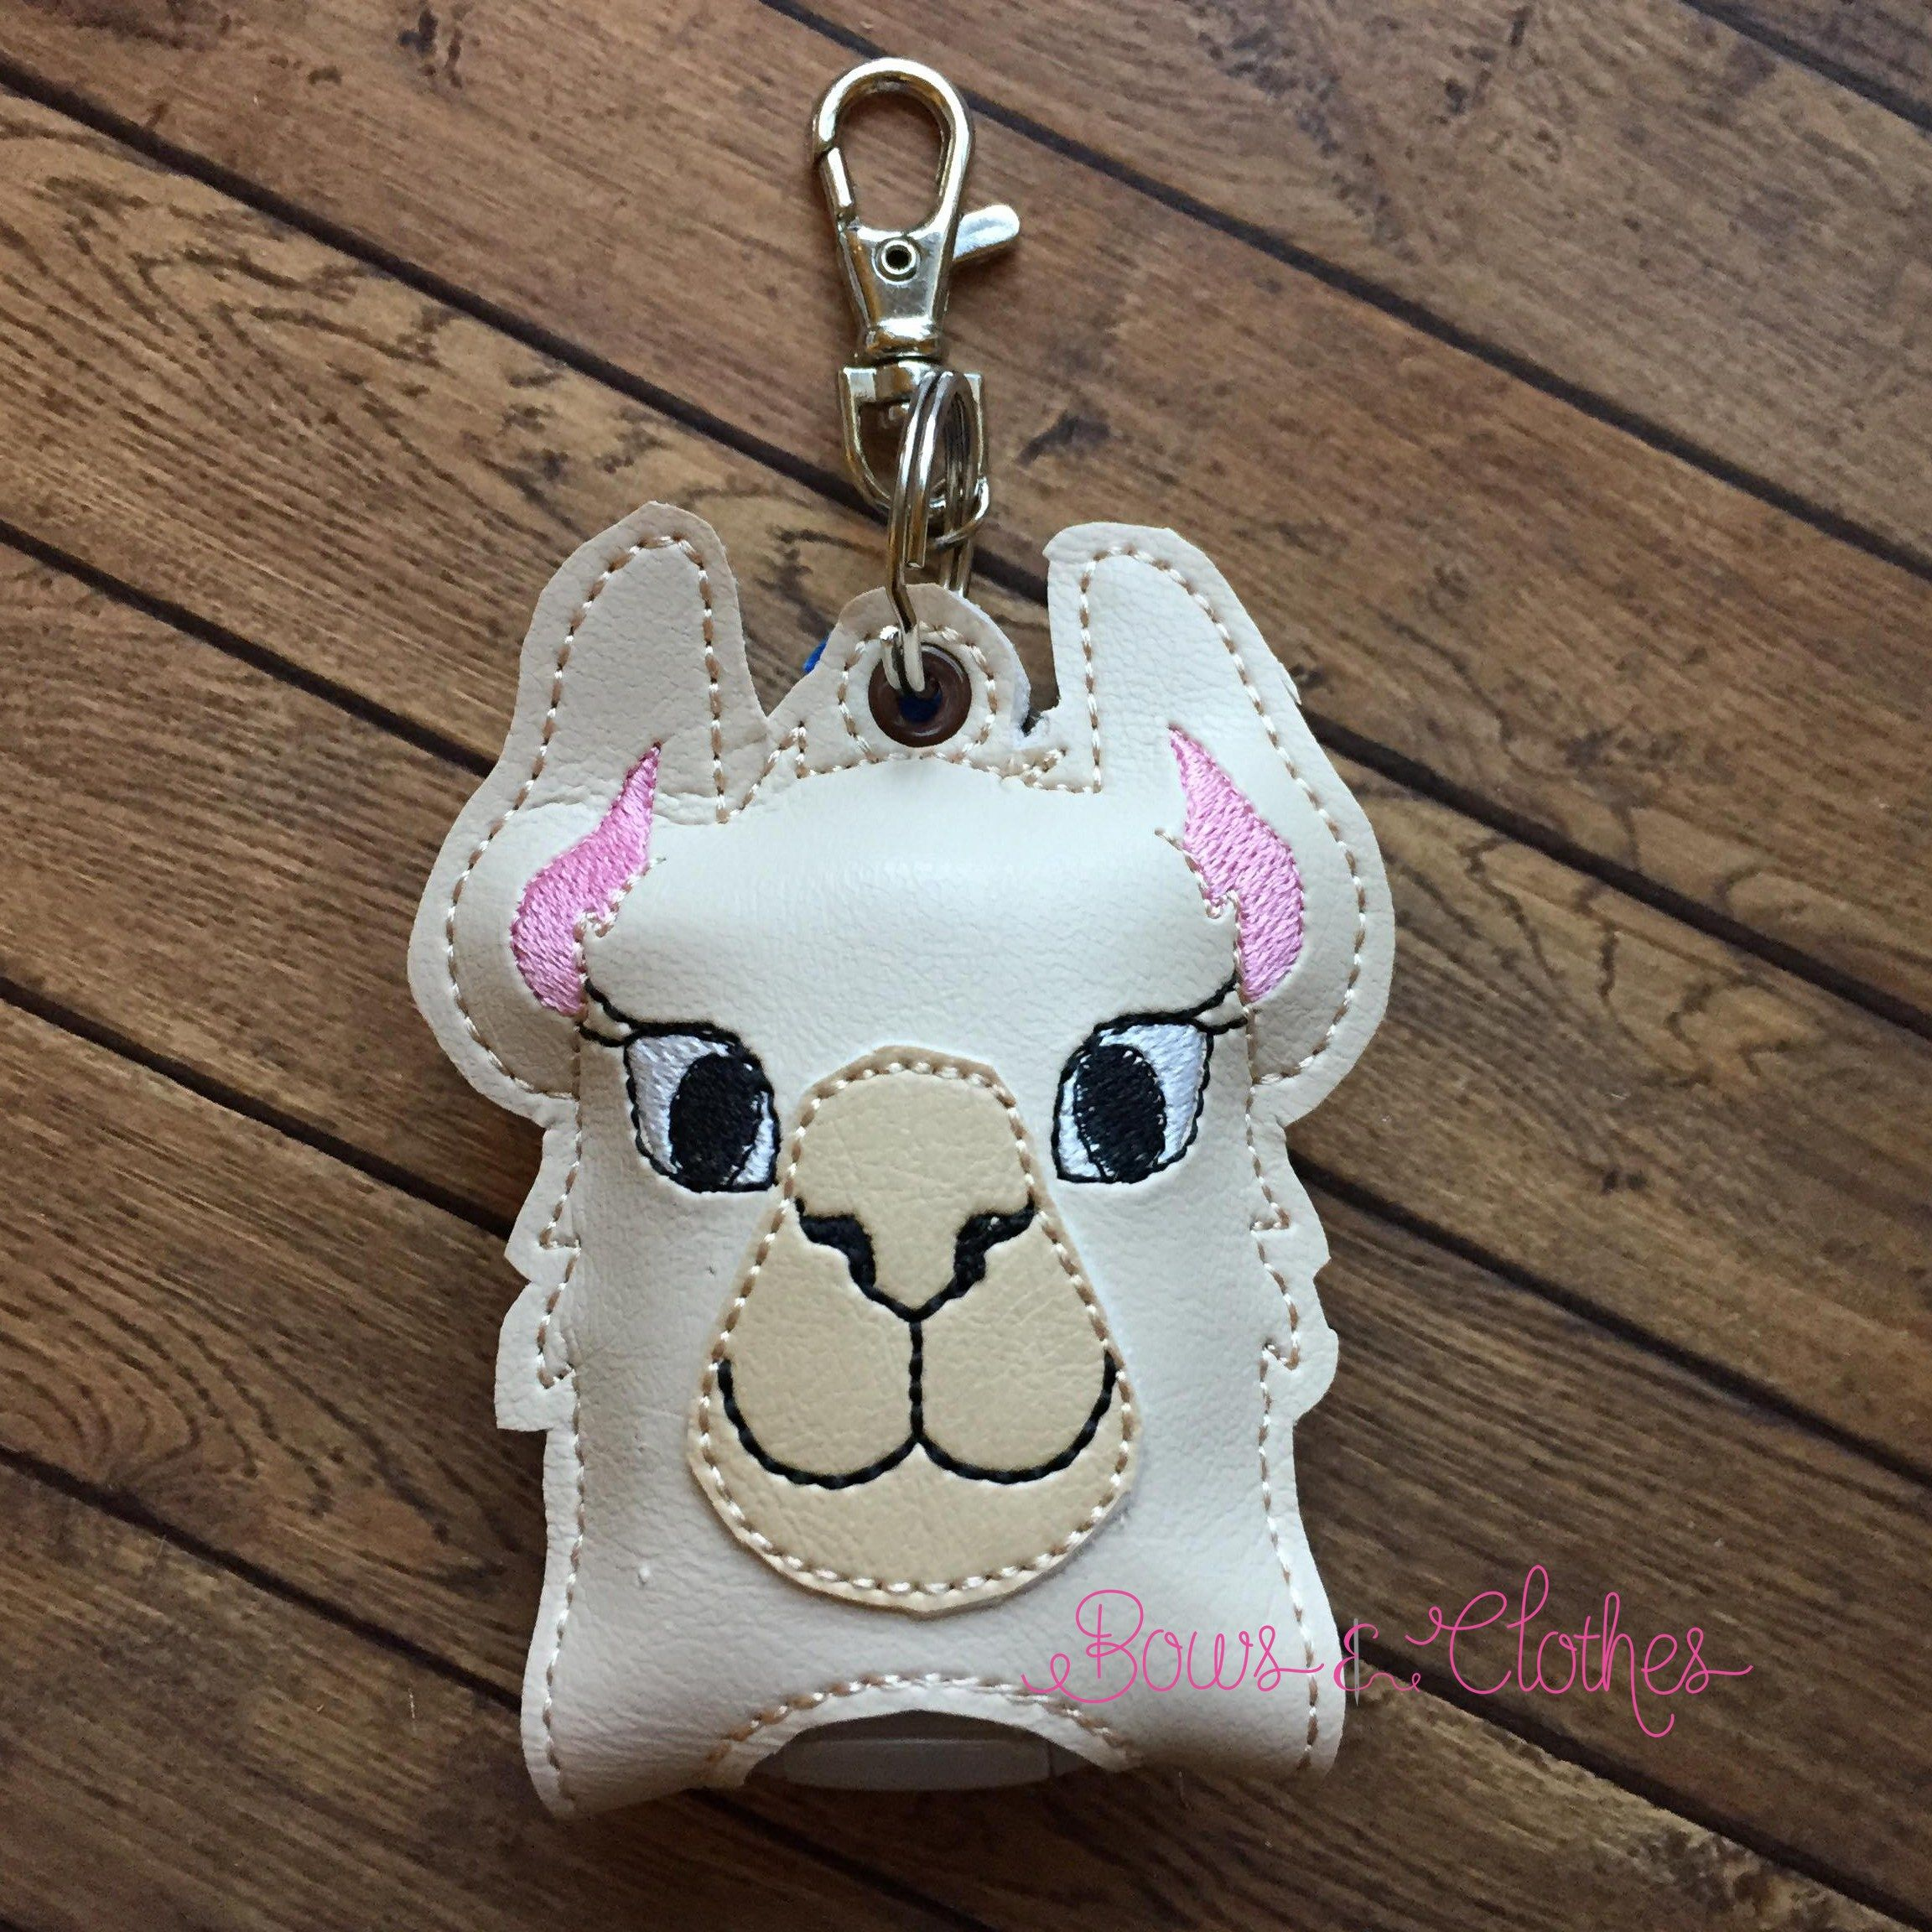 Ulta Happy Llama Sanitizer Sling Happy Hand Sanitizer School Bags